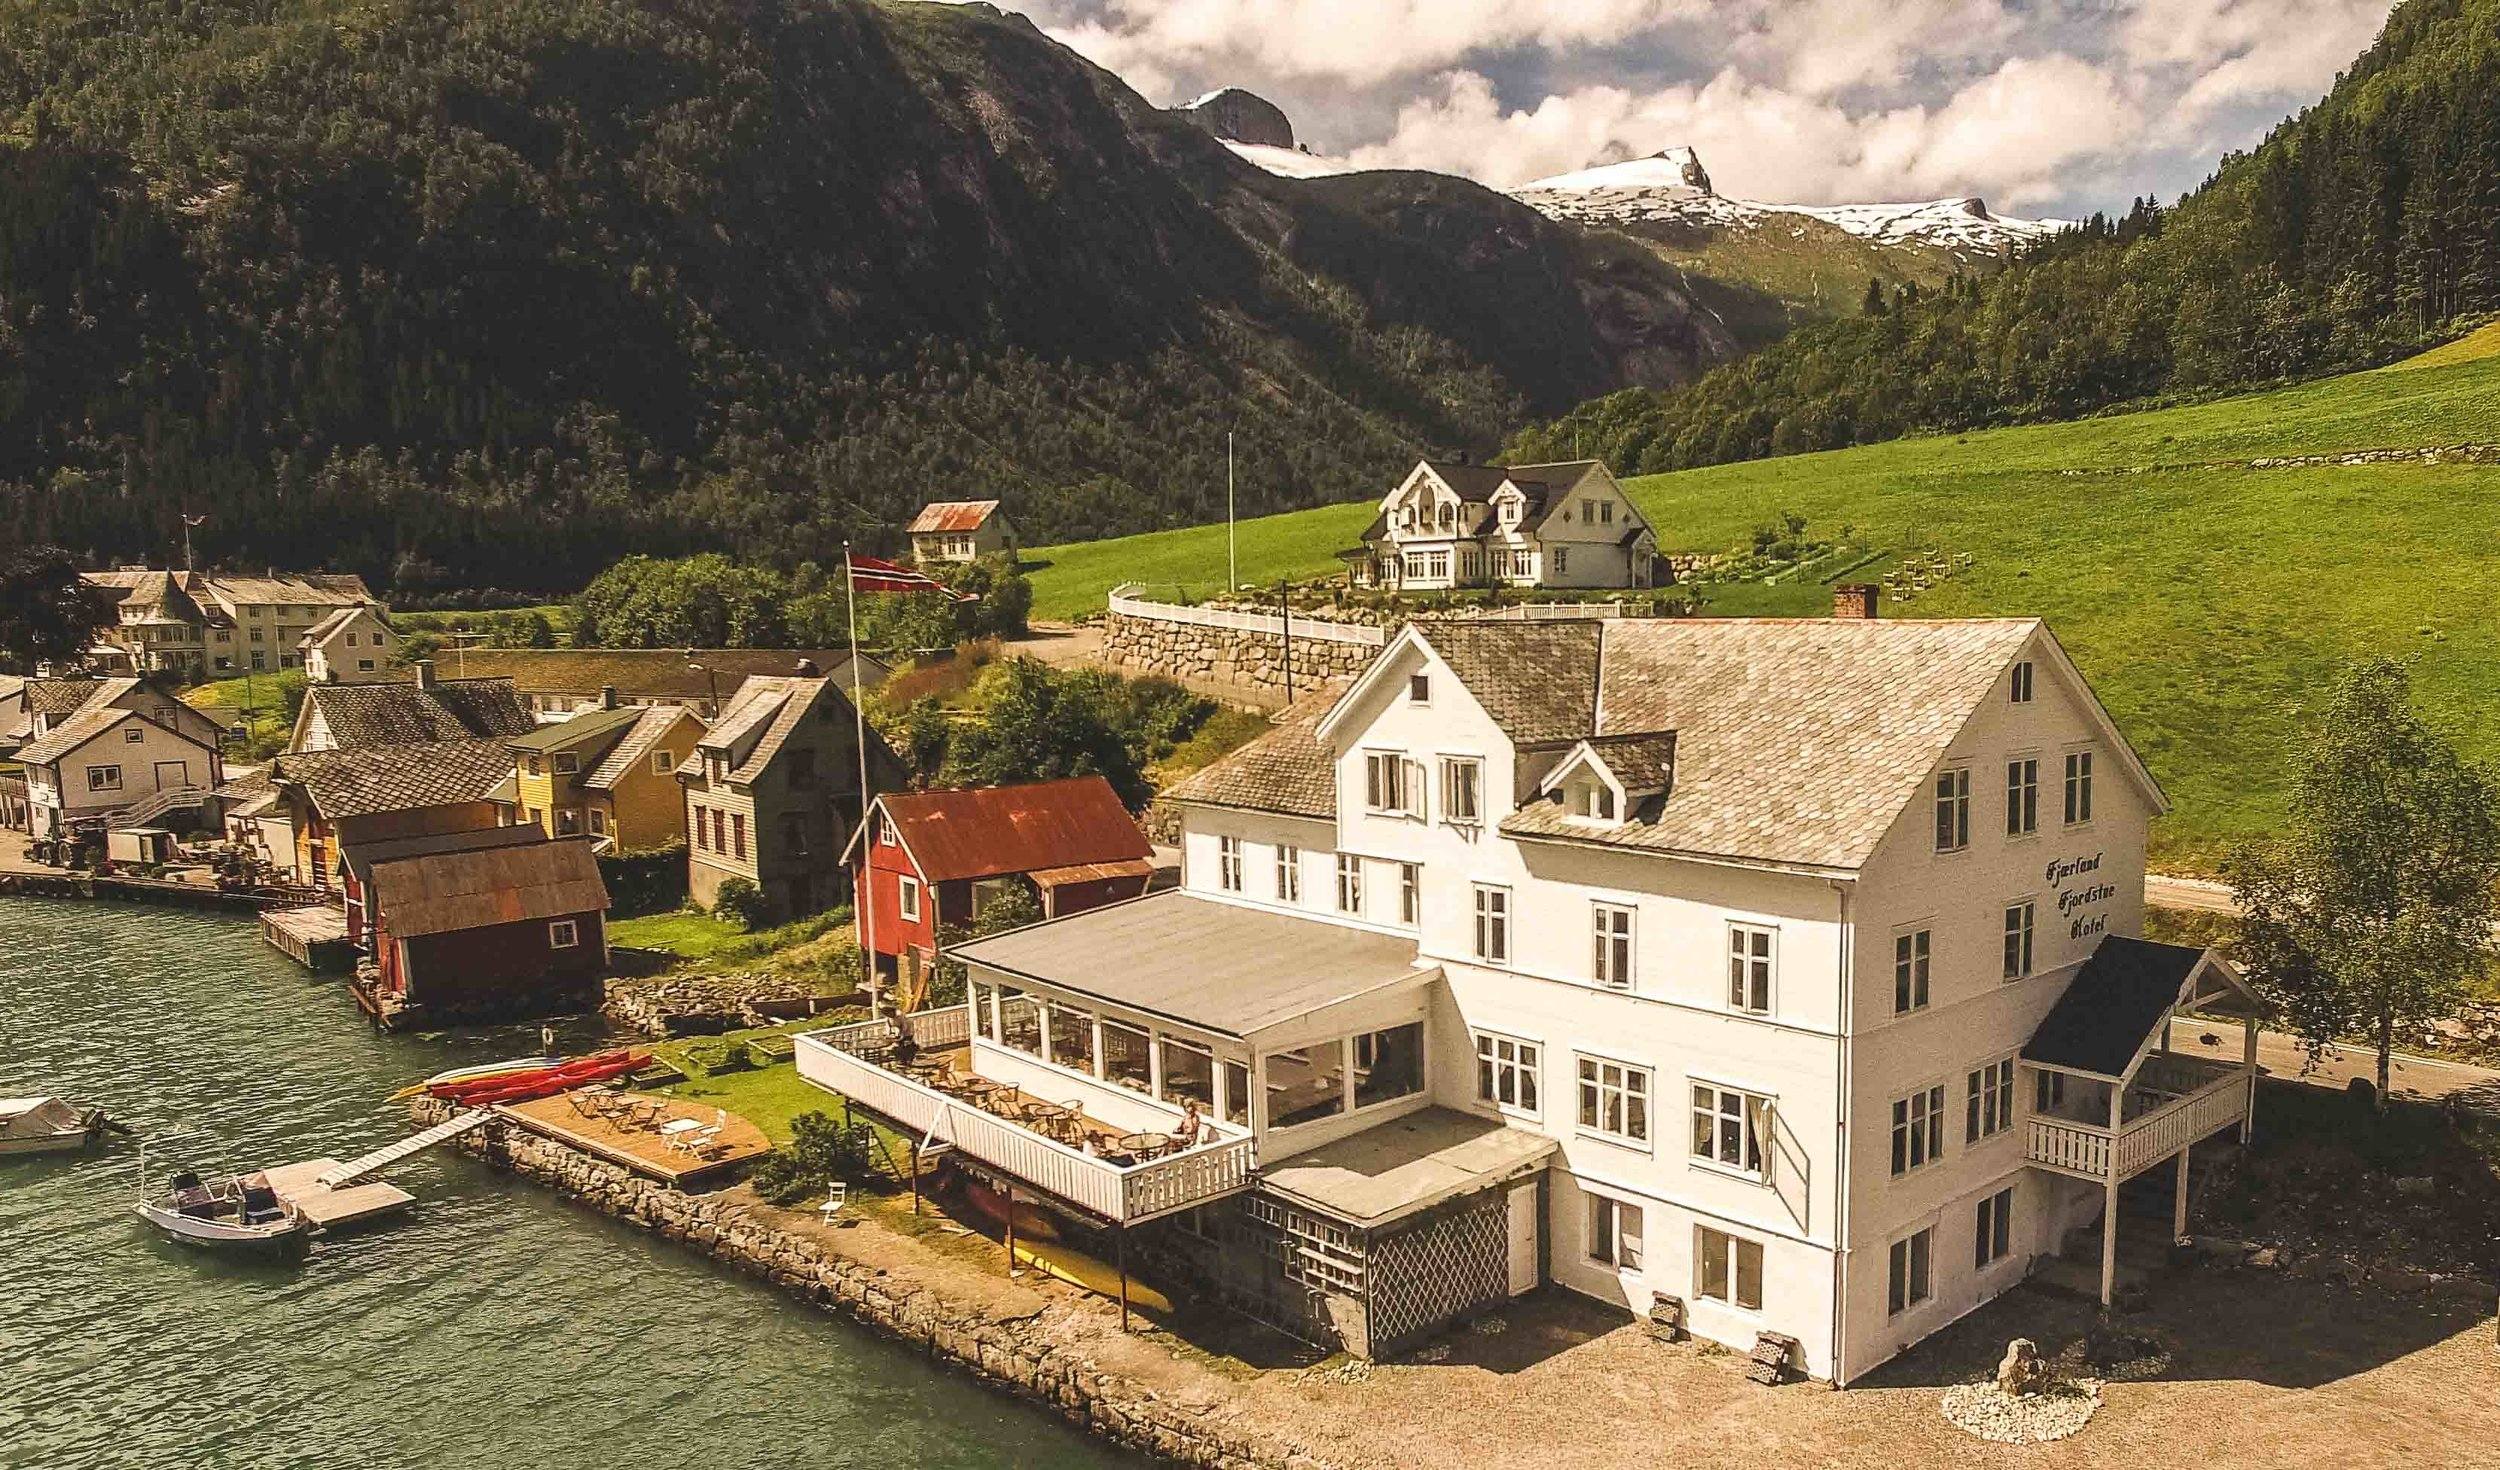 The hotel seen from the fjord